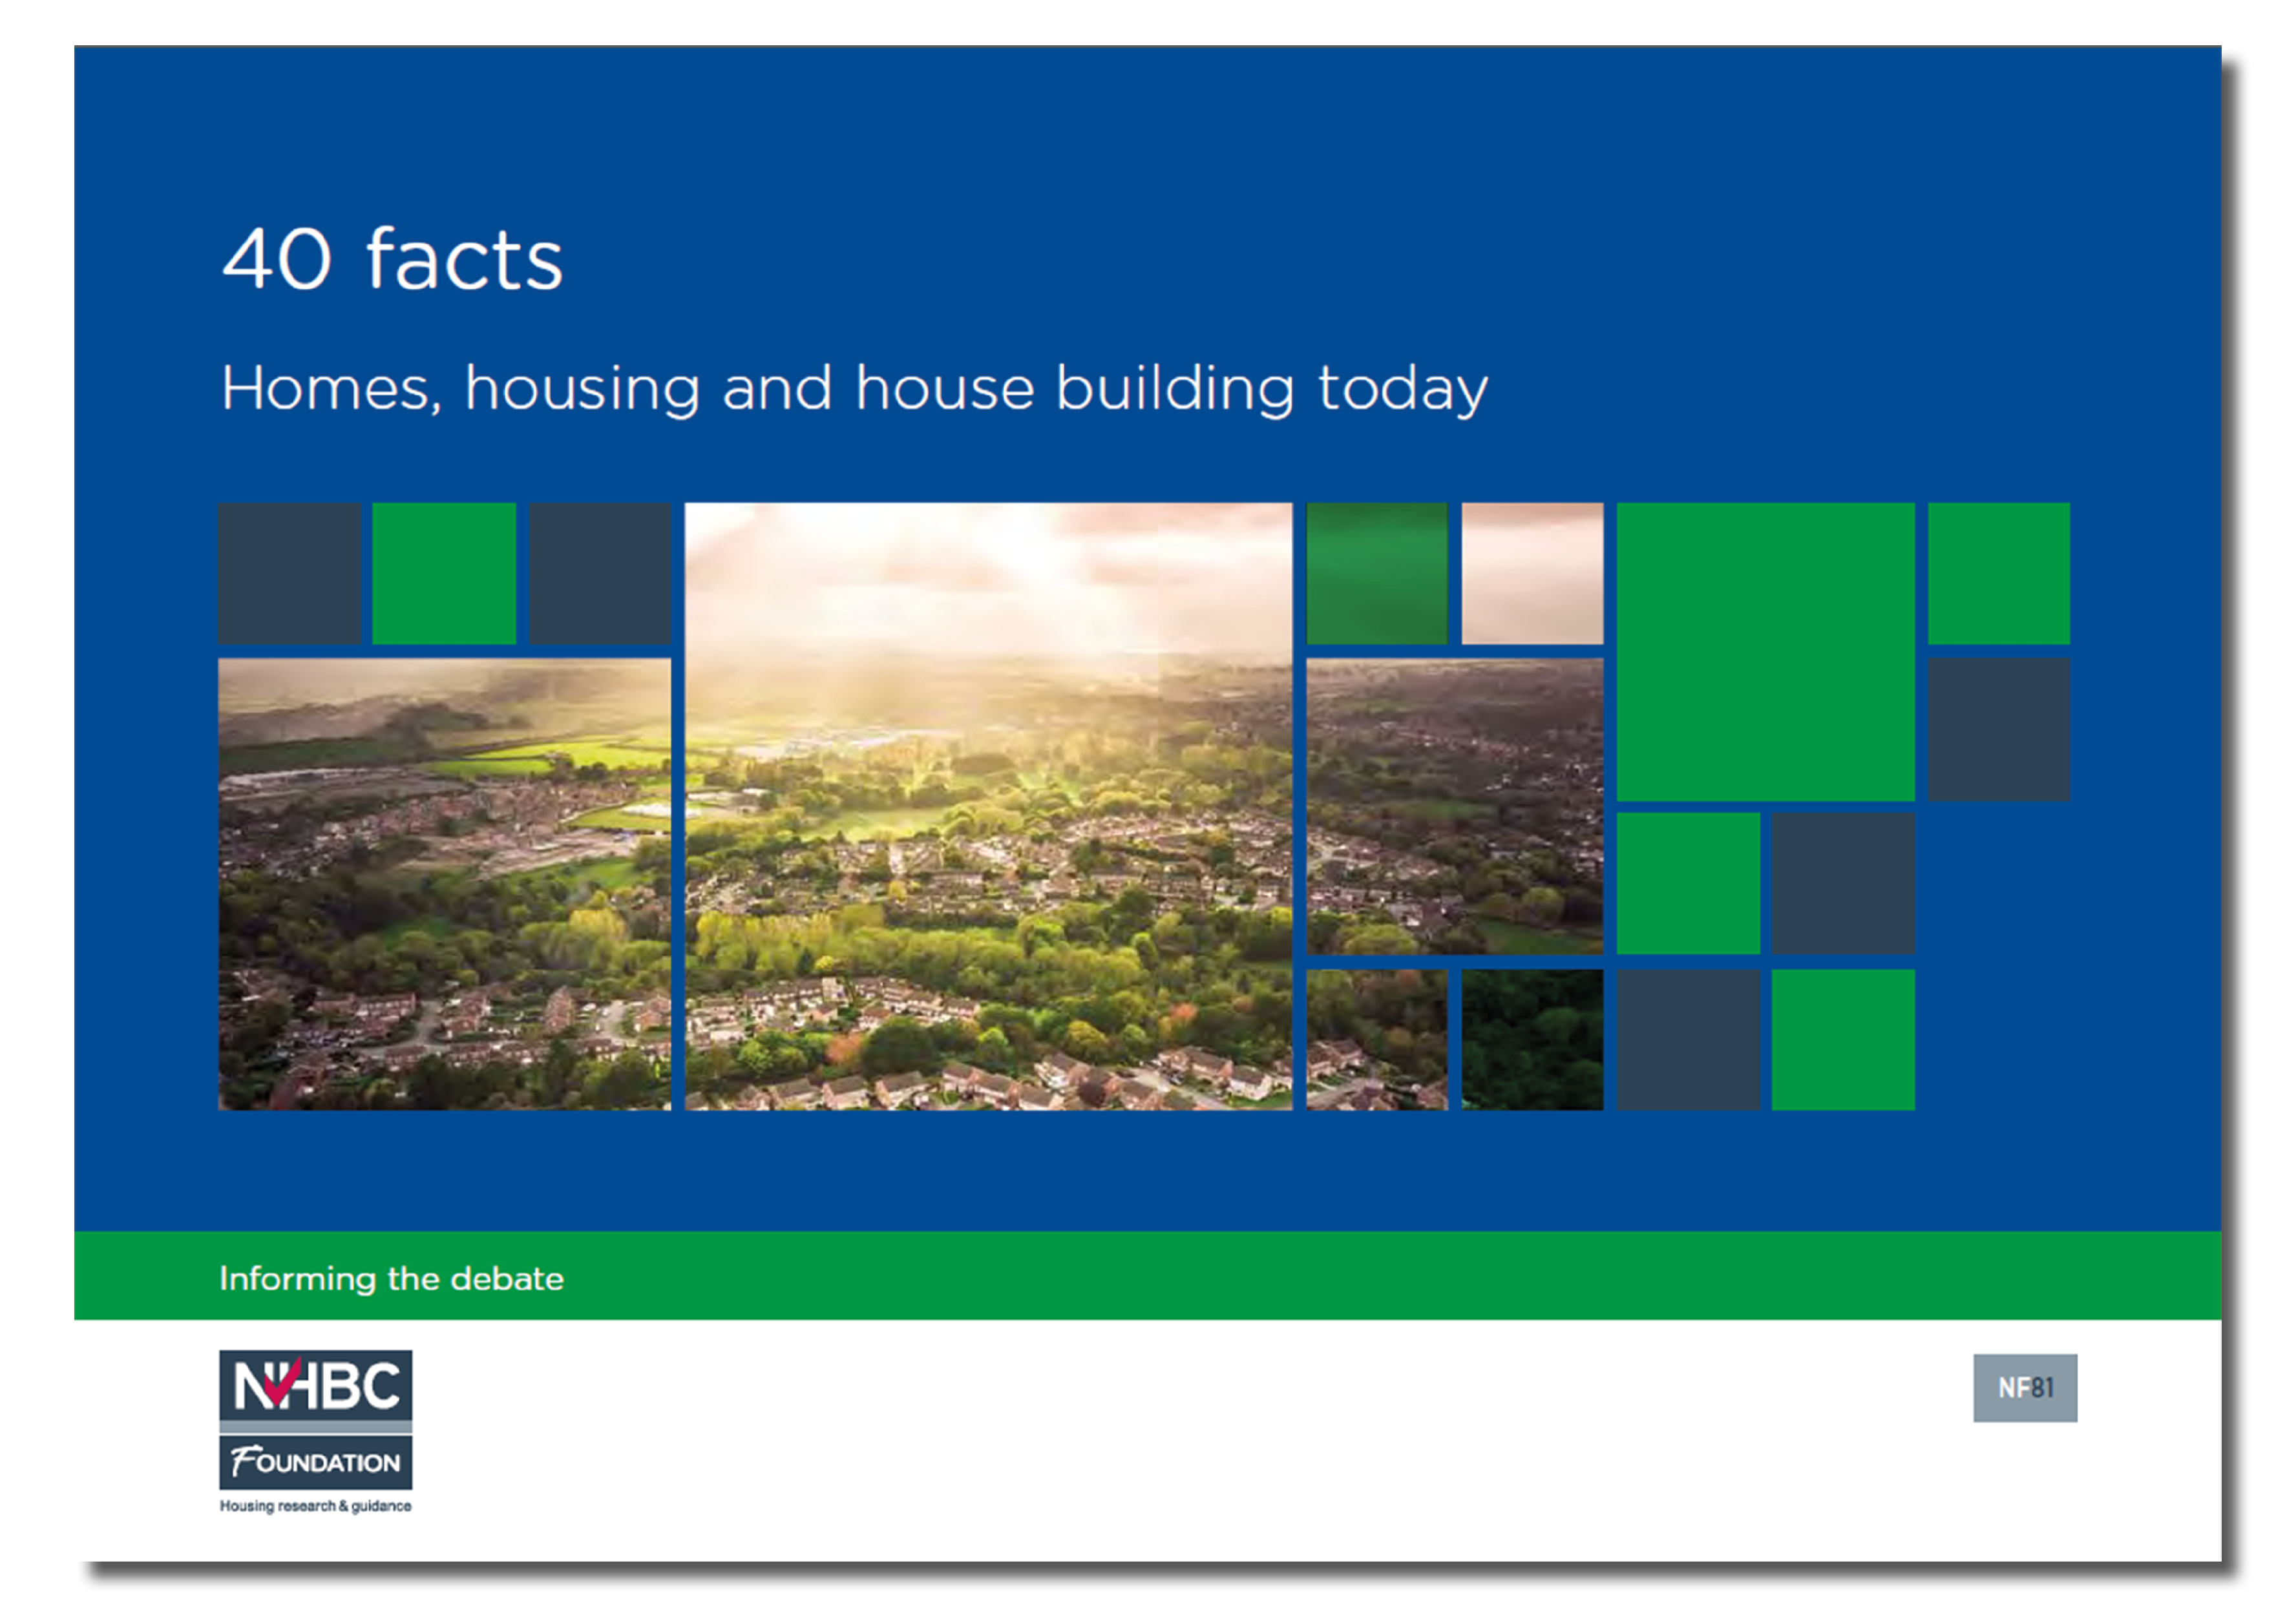 40 facts: homes, housing and house building today